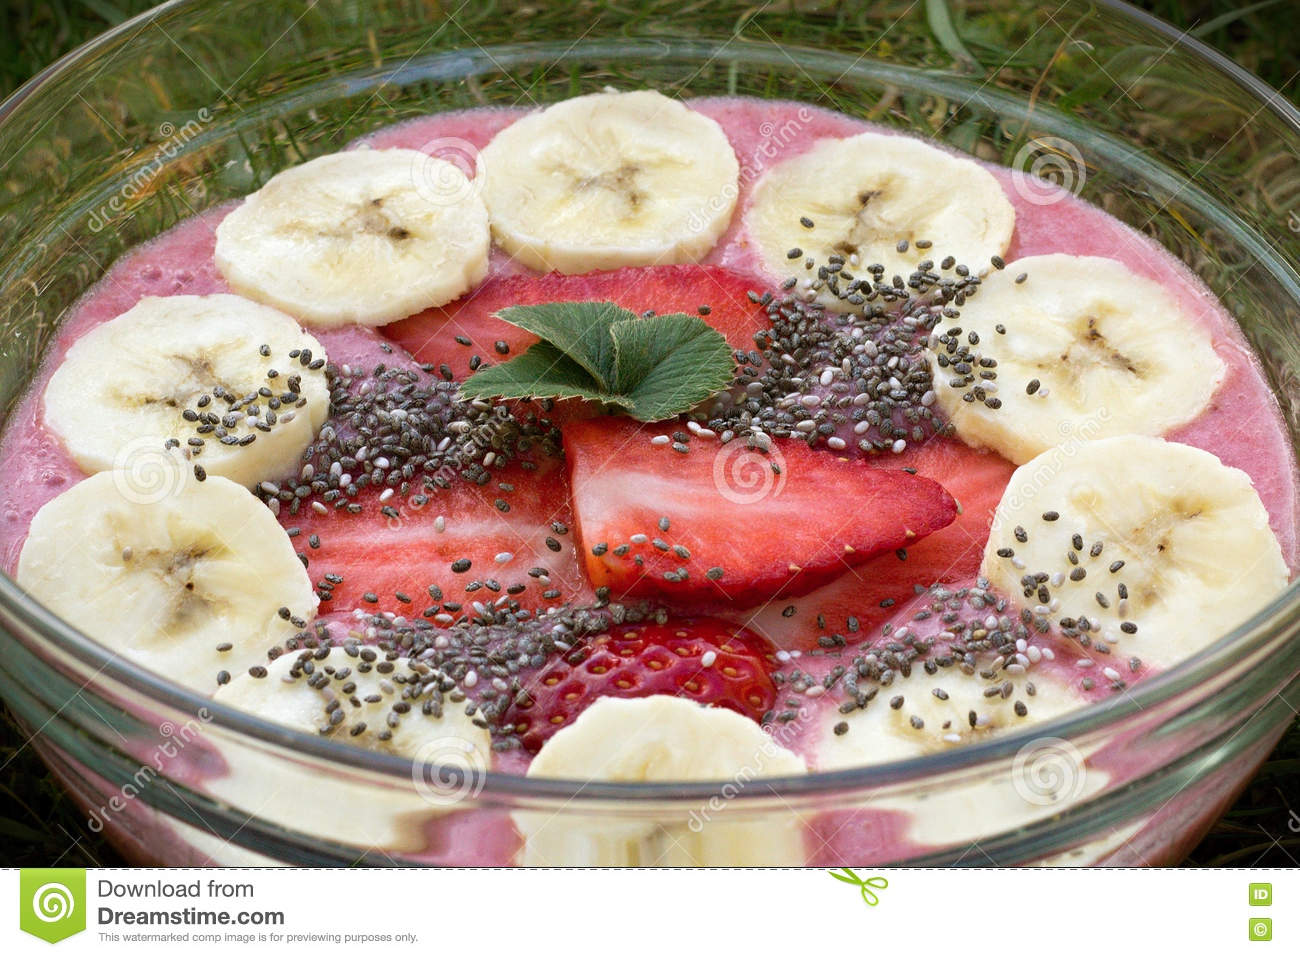 how to make fruit pulp